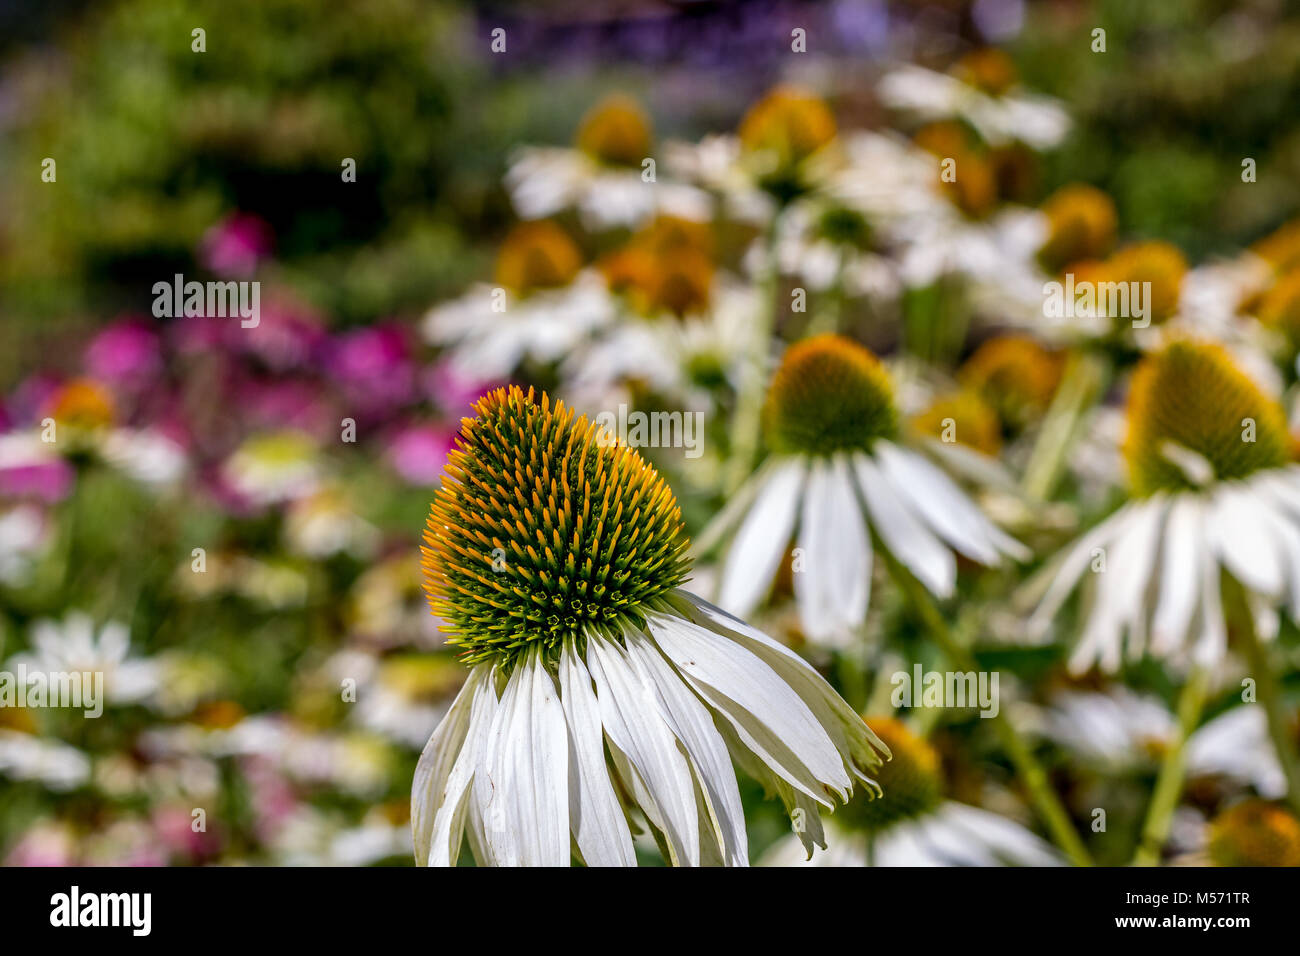 Echinacea purpurea 'Green Edge' - Stock Image